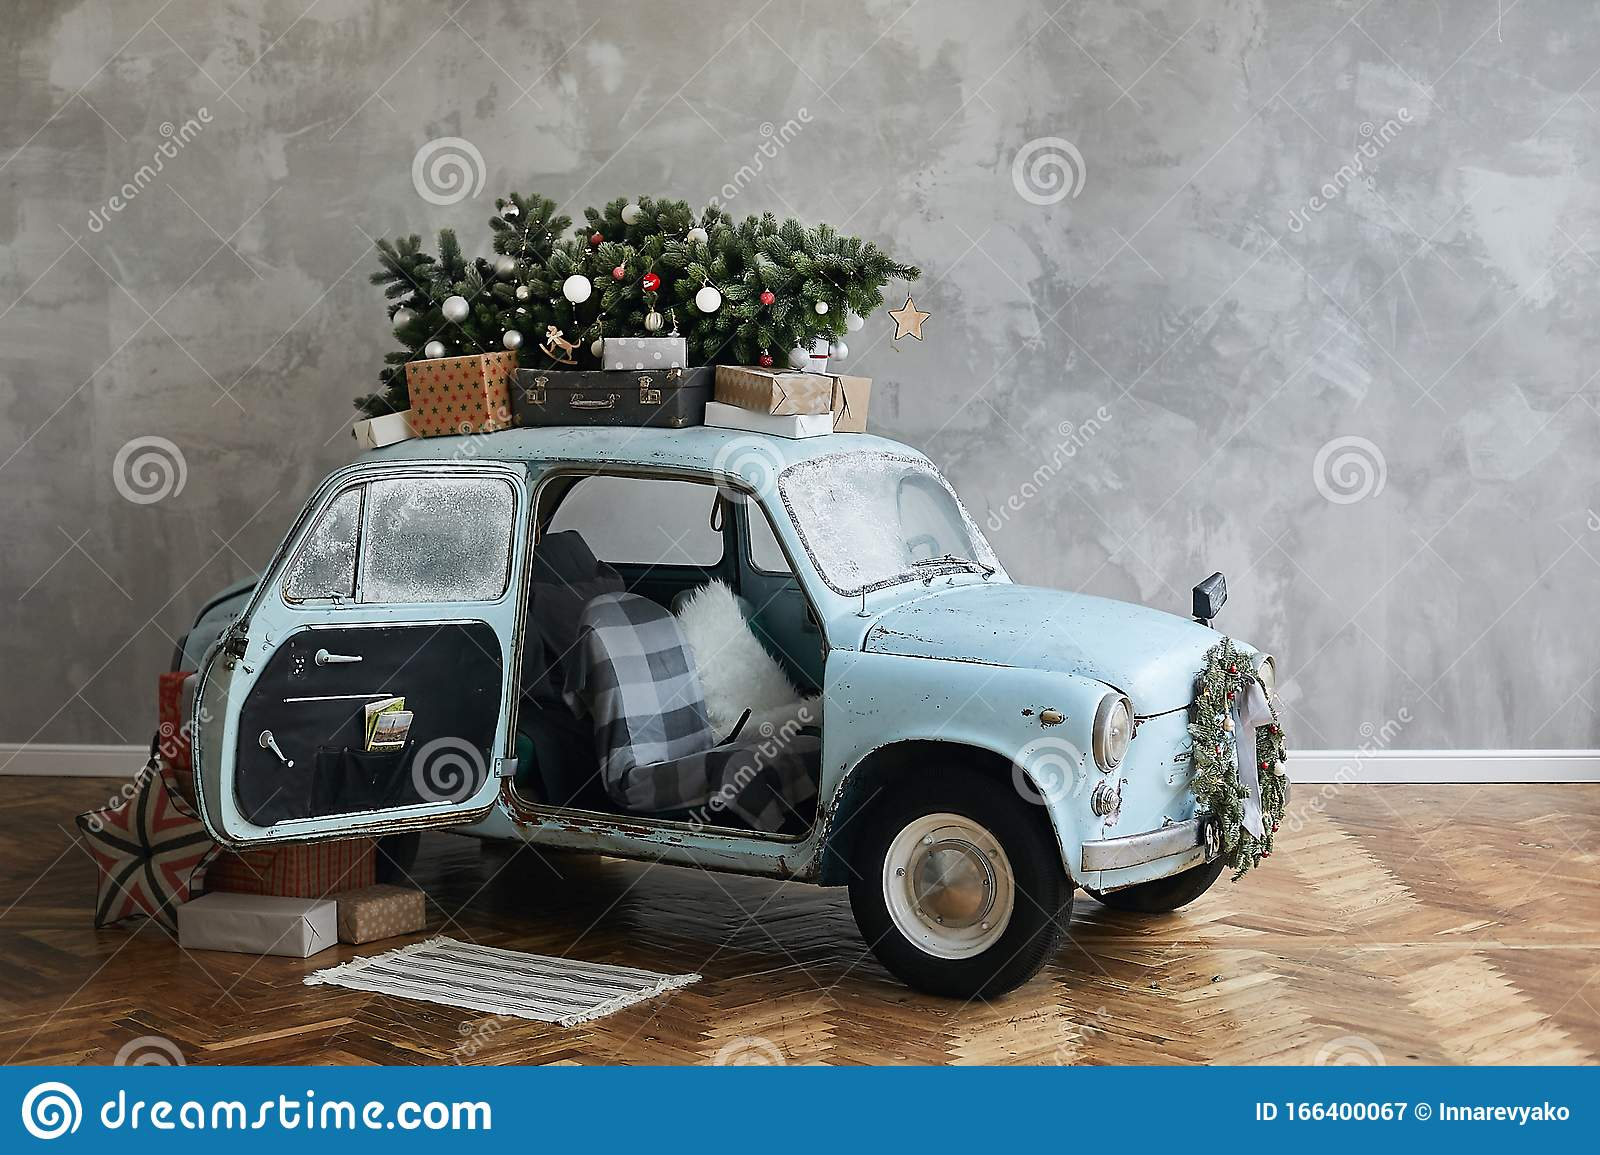 789 Christmas Classic Car Photos Free Royalty Free Stock Photos From Dreamstime